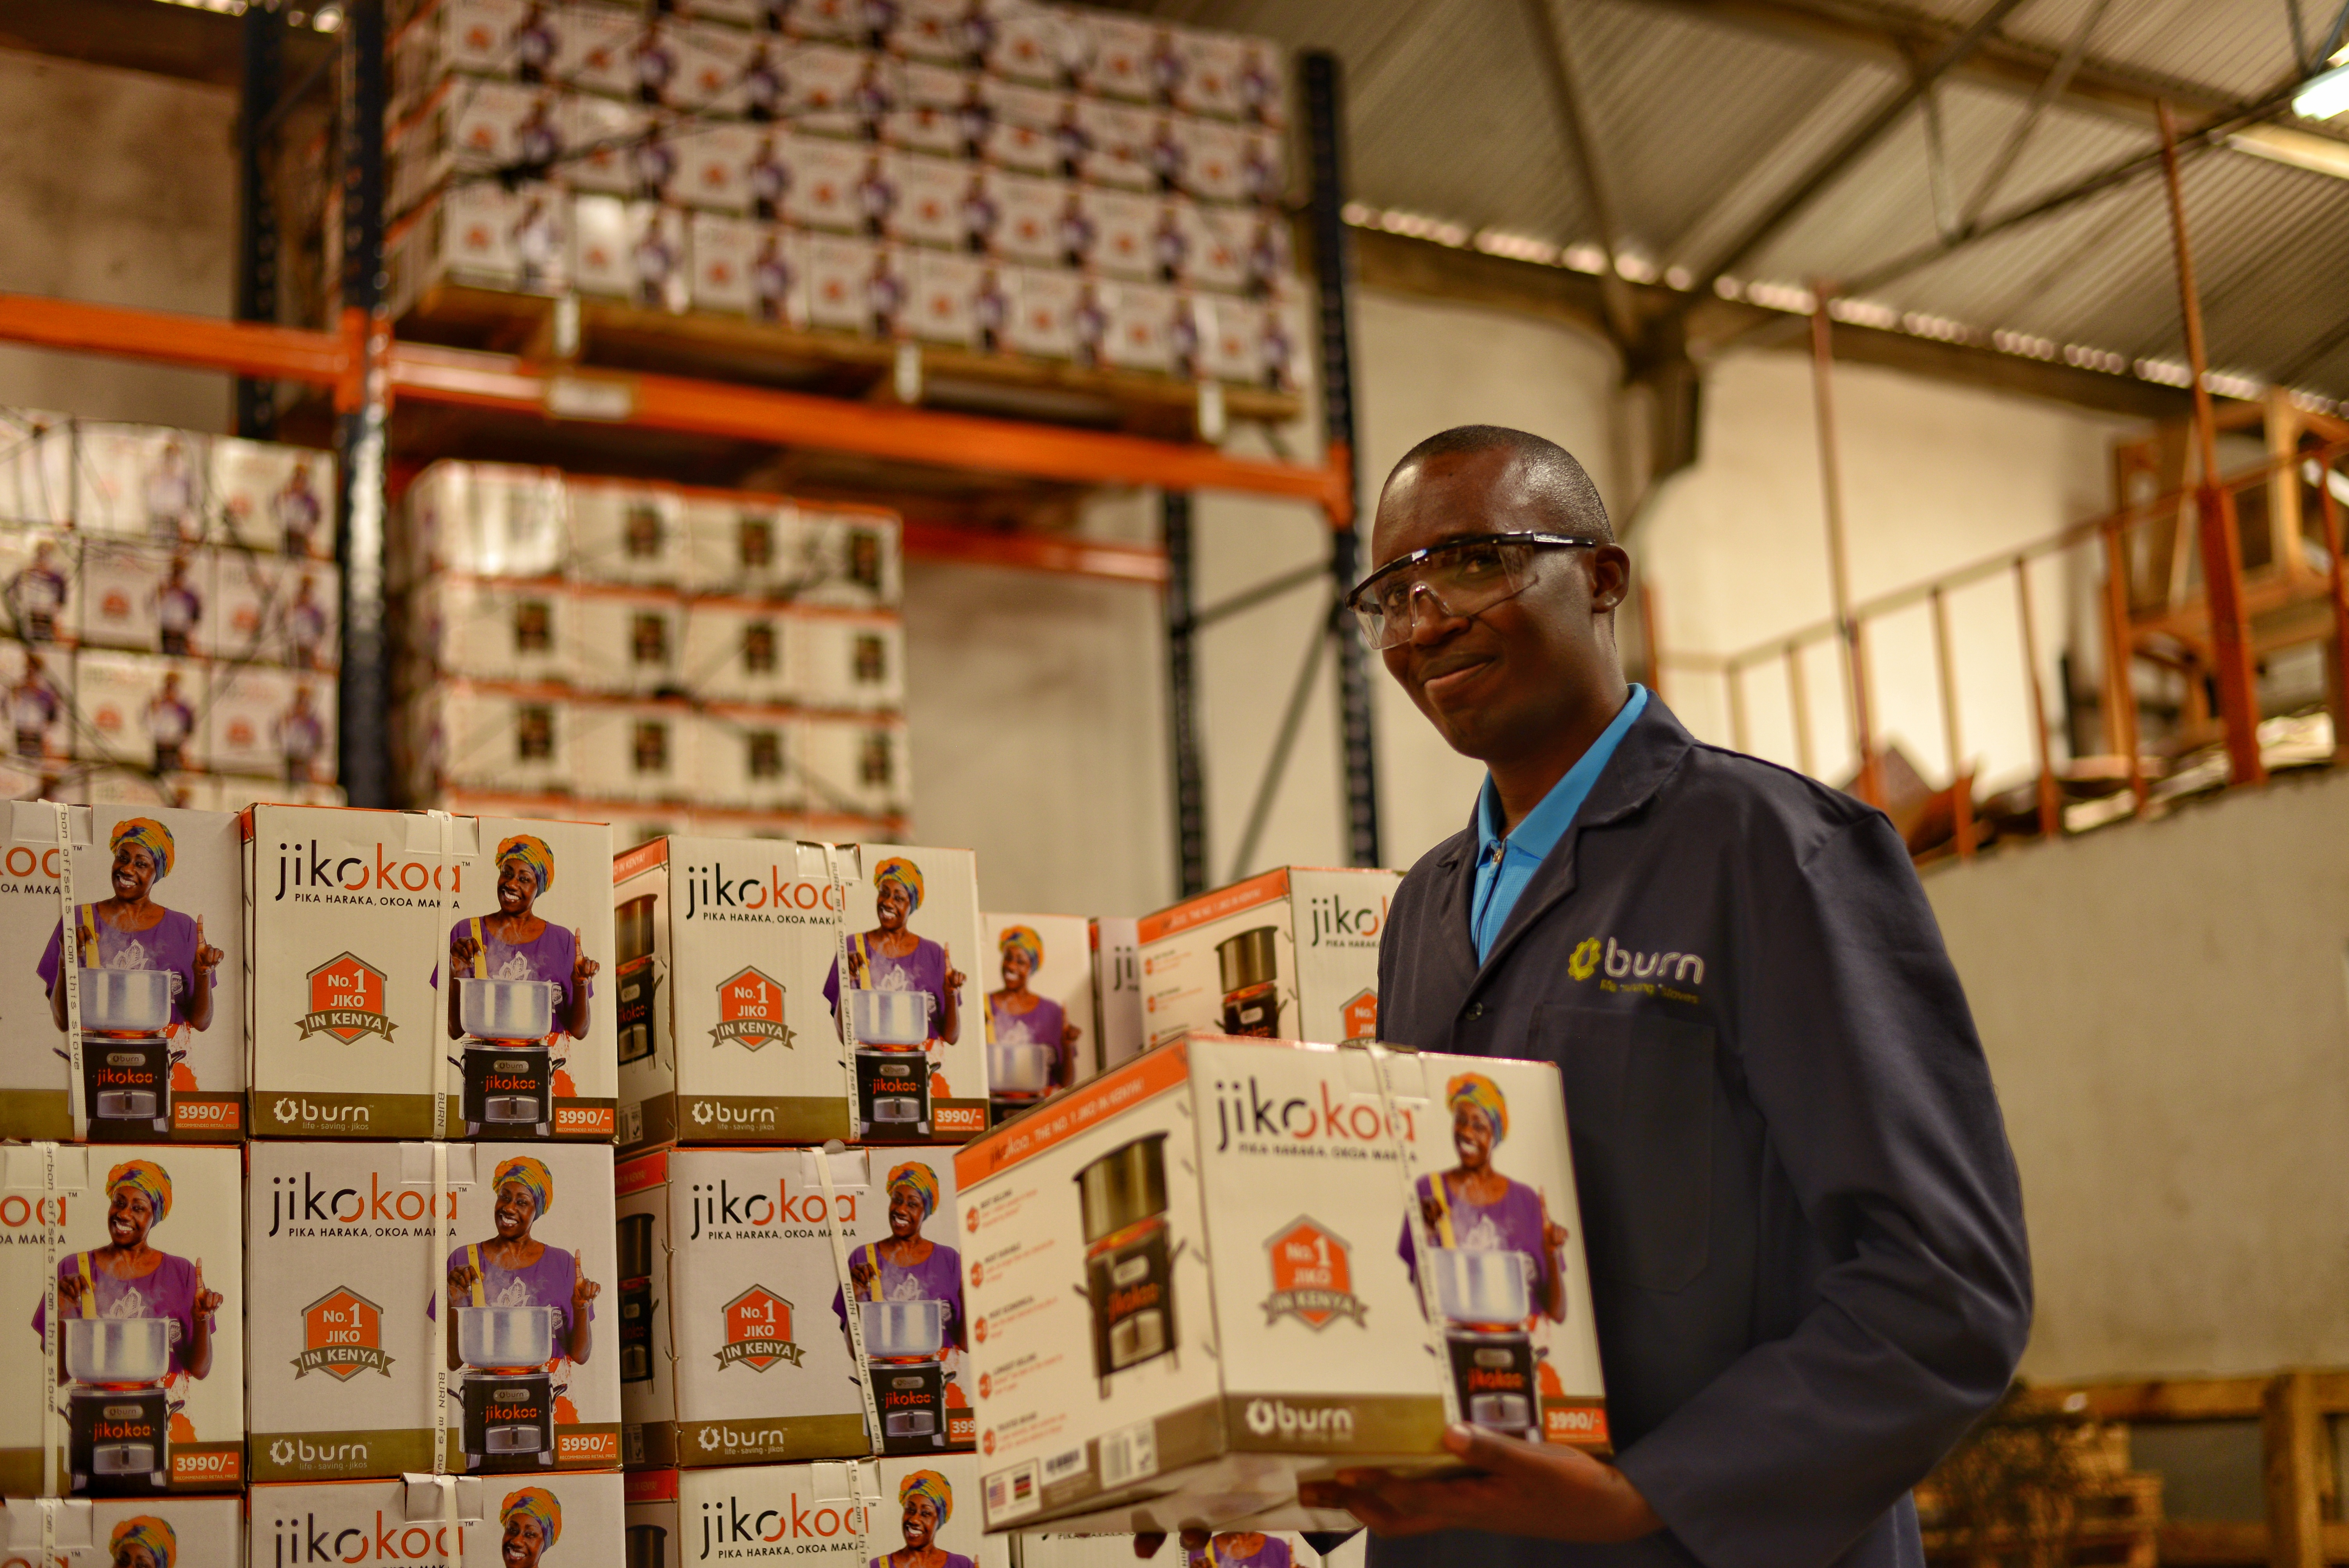 Ephantus, a Process Engineer at BURN holds a Jikokoa while giving me a tour of the factory